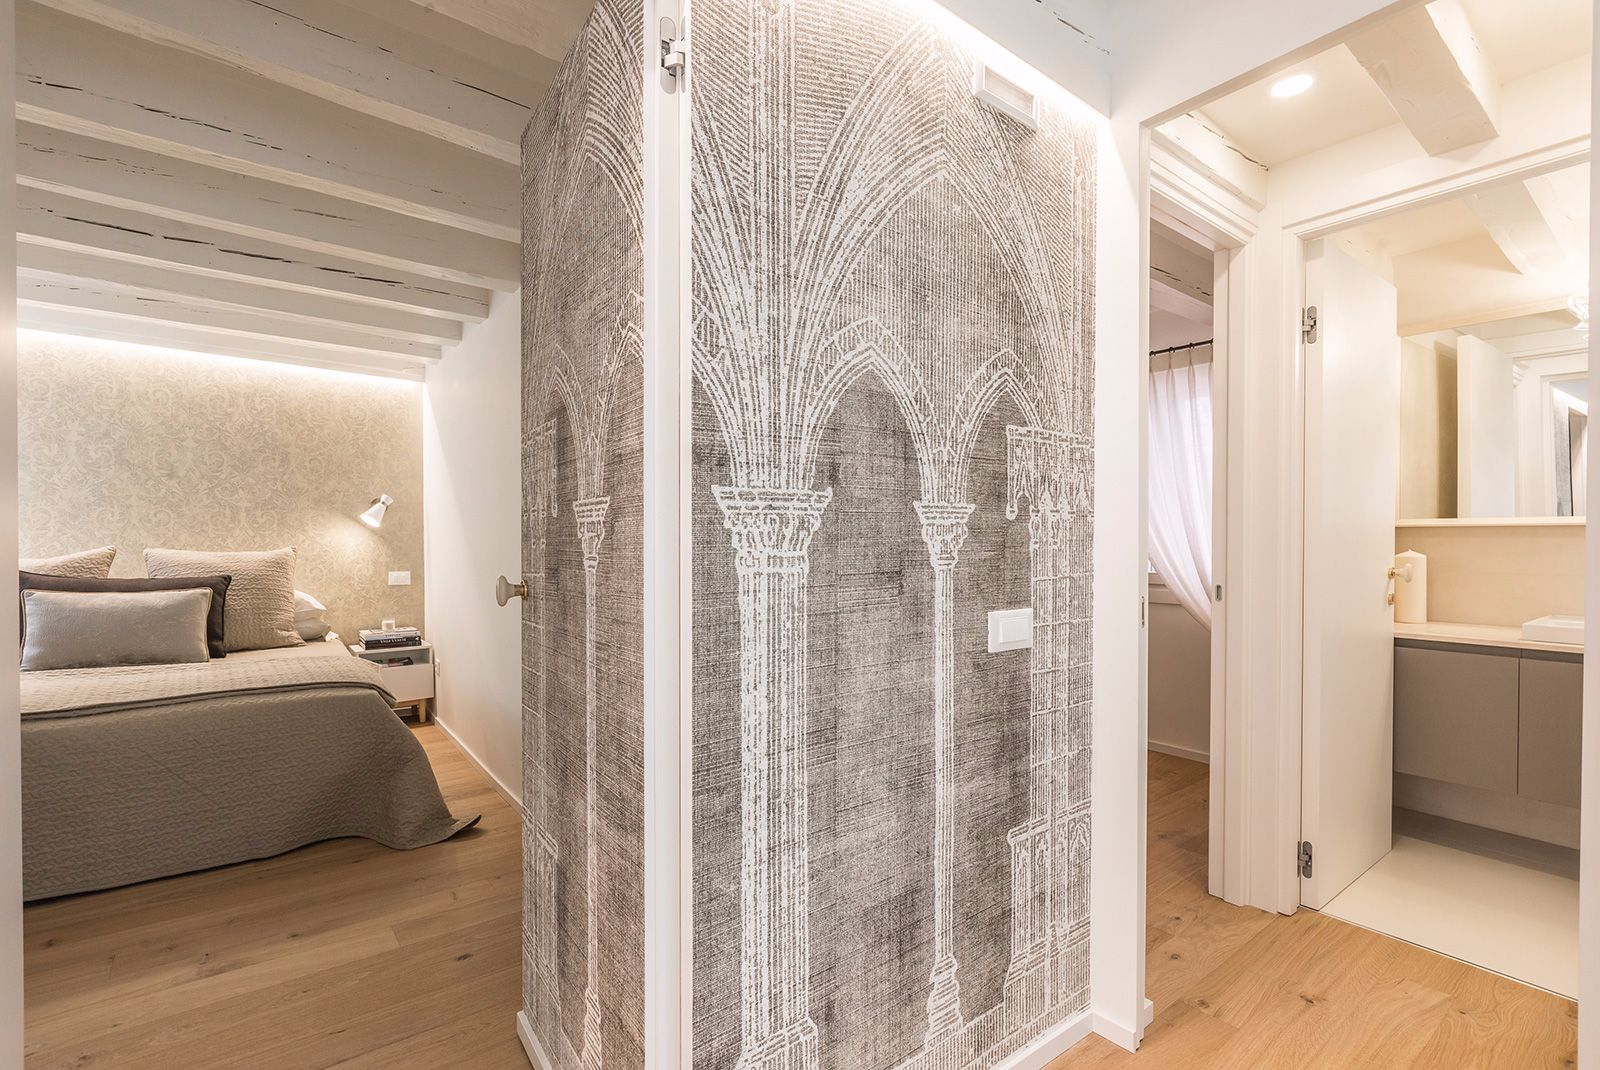 the beautiful Art&Deco wallpaper hides the doors to the bedrooms